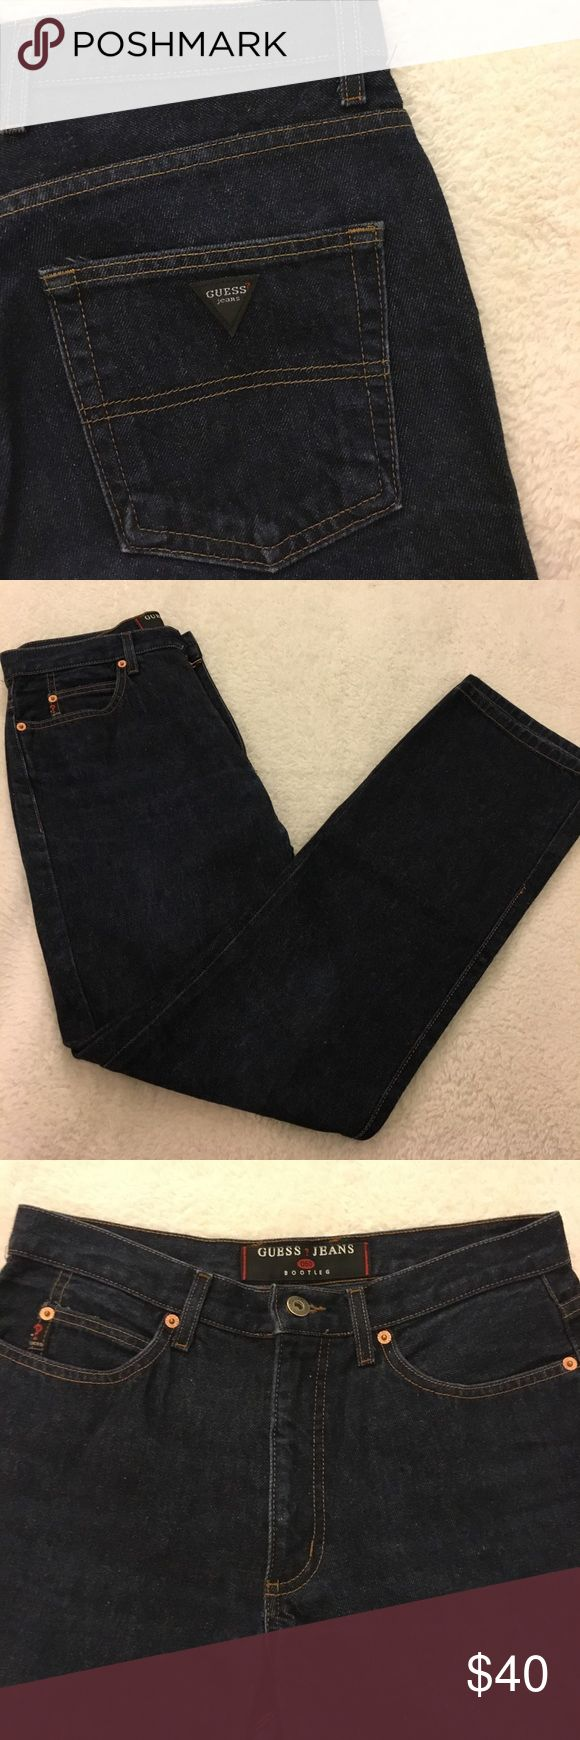 """Guess Bootleg Jeans - Size 31/32 Guess Bootleg Jeans - Size 31"""" / Inseam 32"""". Denim is dark and sturdy. Has the old school Guess symbol on back pocket. Excellent Condition. Guess Jeans Boot Cut"""